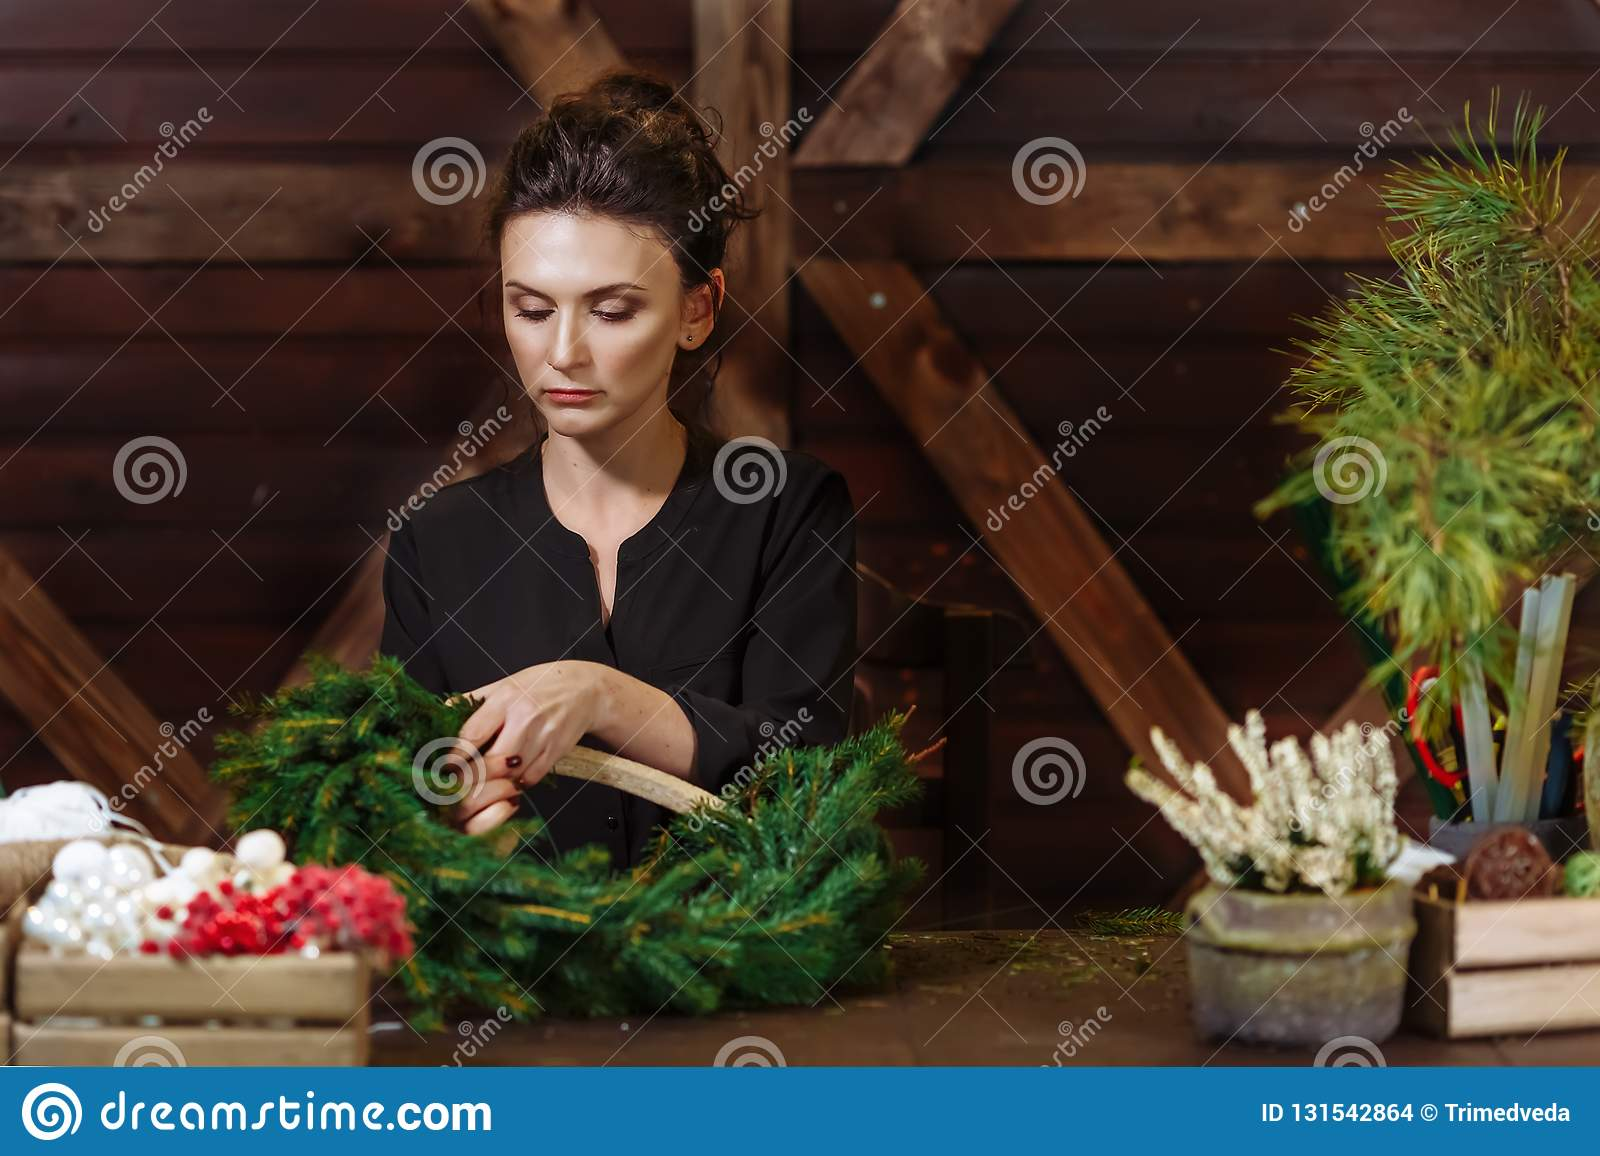 Working Florist Woman with Christmas Wreath. Young Cute smiling Woman designer preparing Christmas Evergreen Tree Wreath